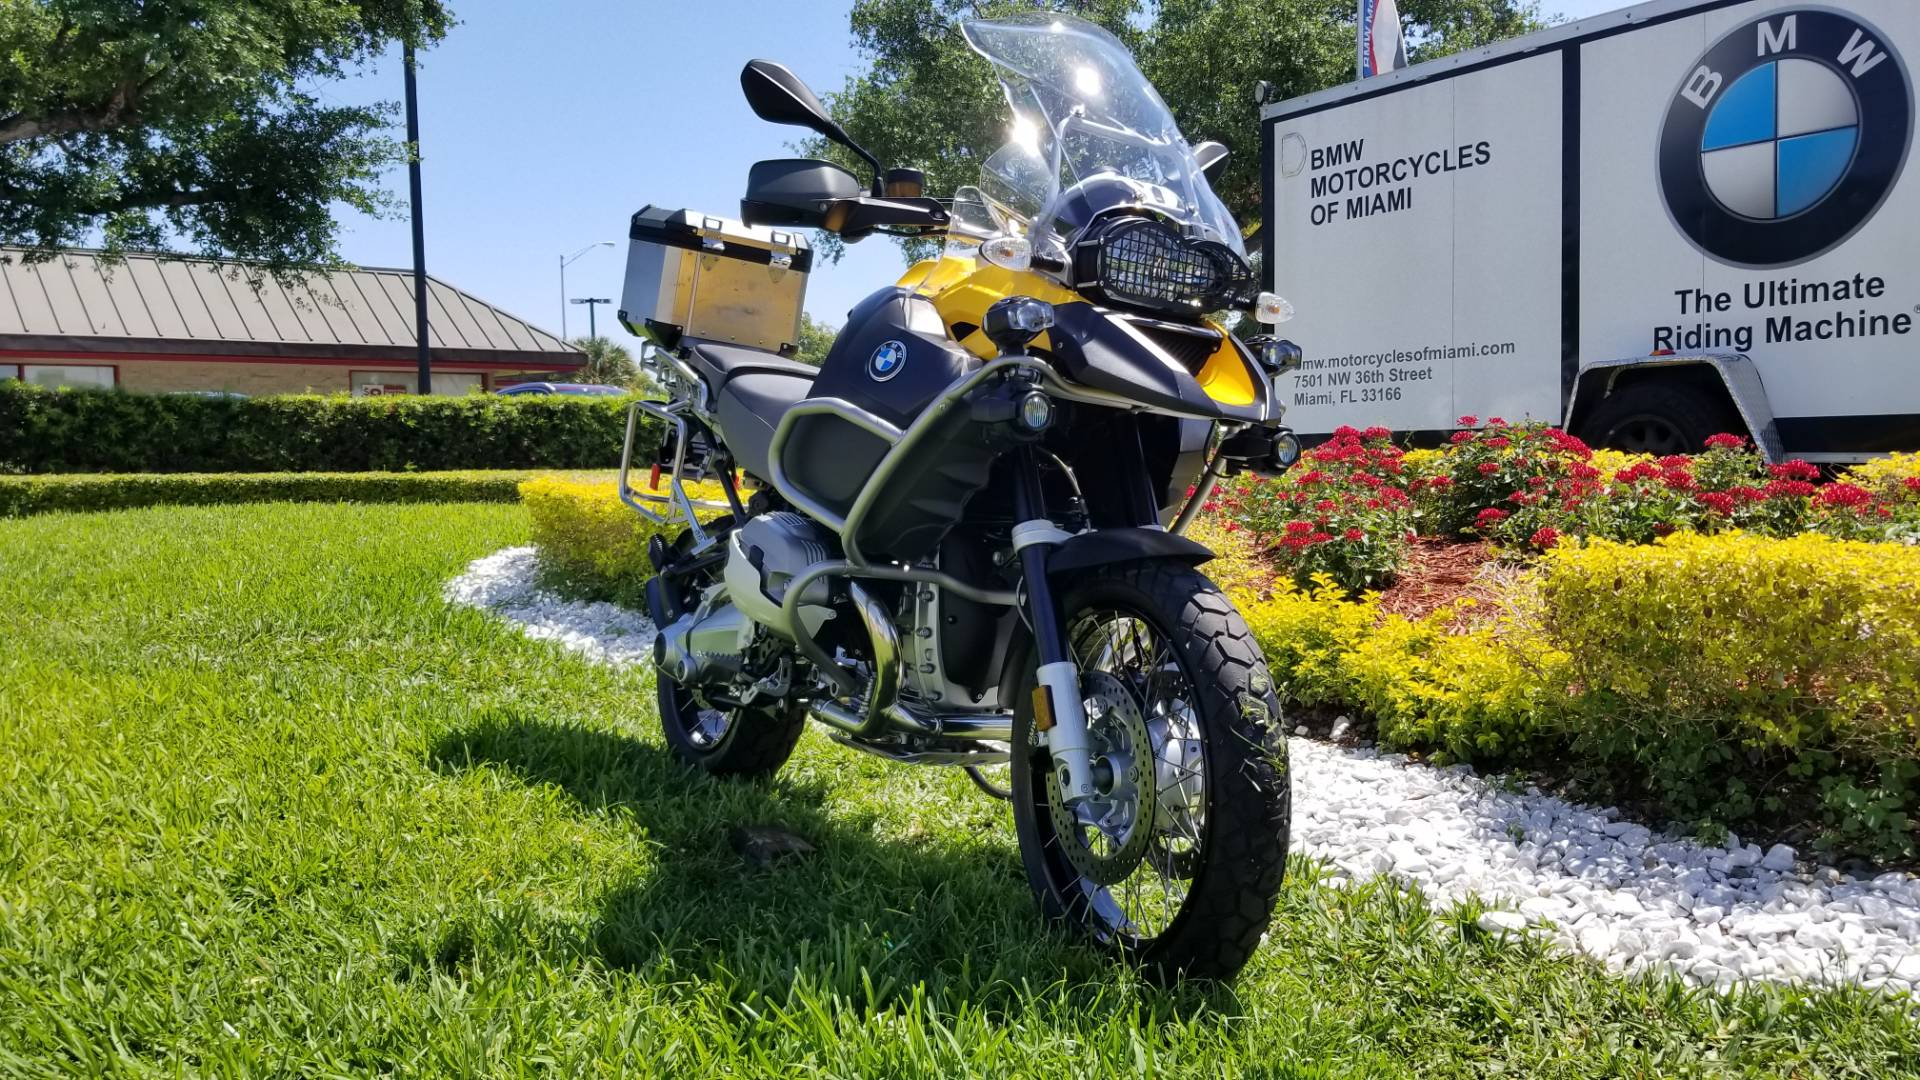 Used 2011 BMW R 1200 GSA For Sale, Pre owned BMW R 1200GSA For Sale, BMW Motorcycle R1200GSA, BMW Motorcycles of Miami, Motorcycles of Miami, Motorcycles Miami - Photo 1